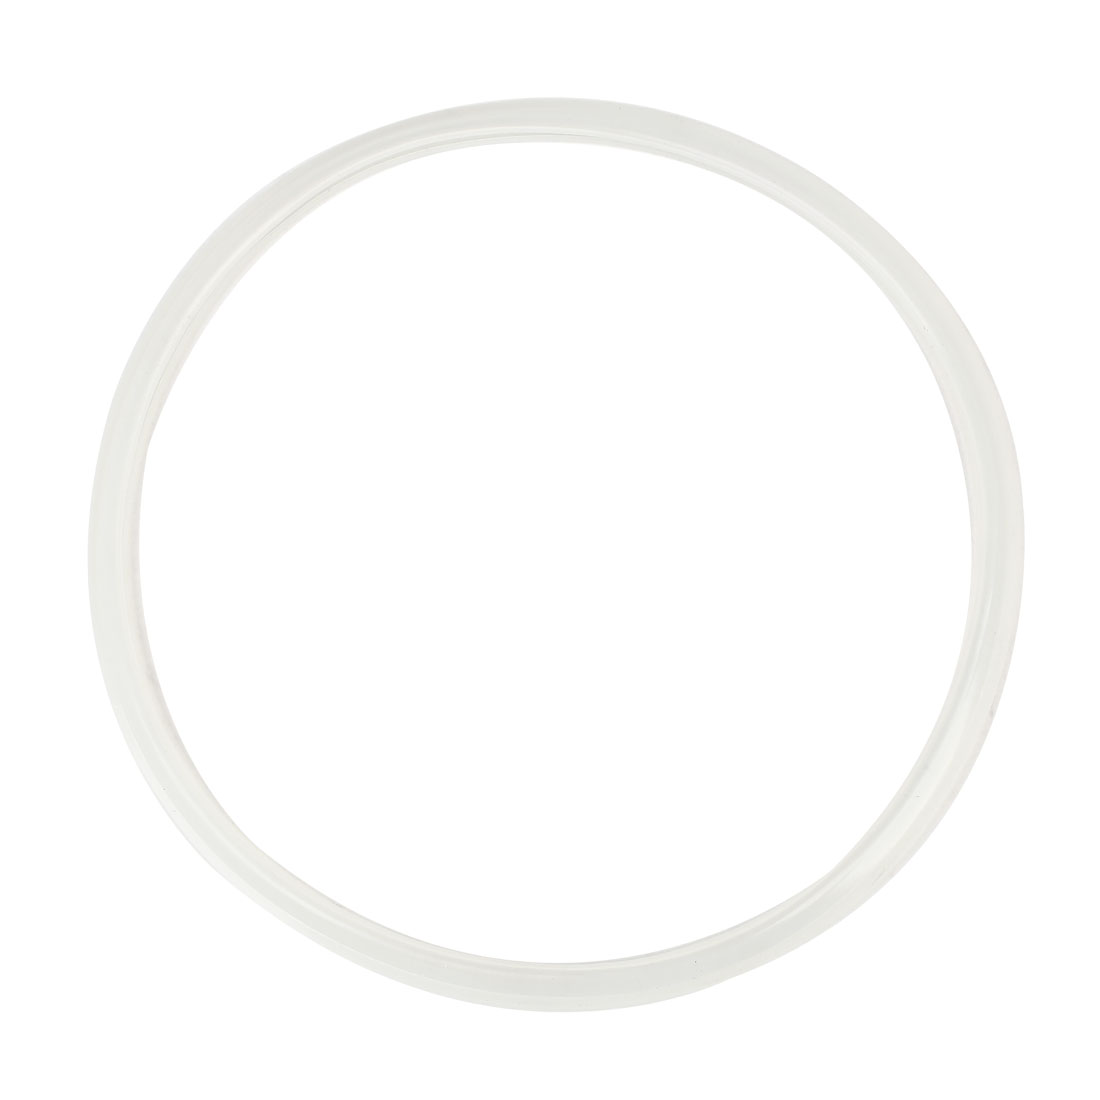 Clear White Round Pressure Cooker Rubber Sealing Ring 28cm x 31cm